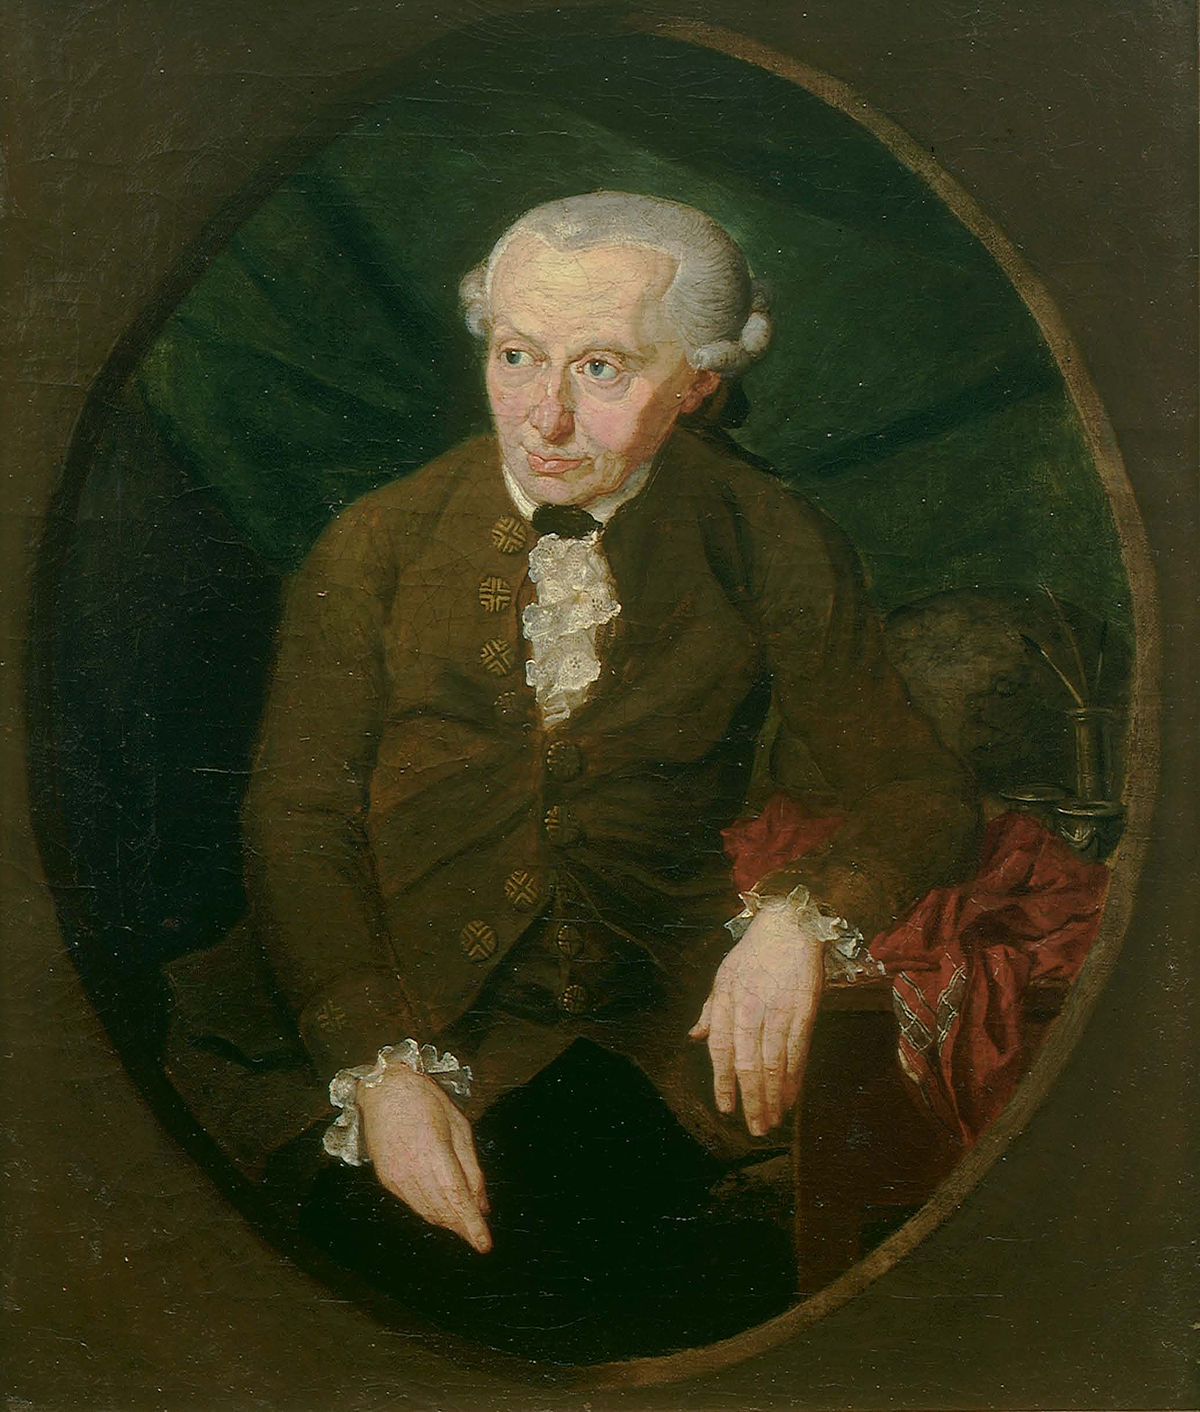 immanuel kant A brief discussion of the life and works of immanuel kant, with links to electronic texts and additional information.